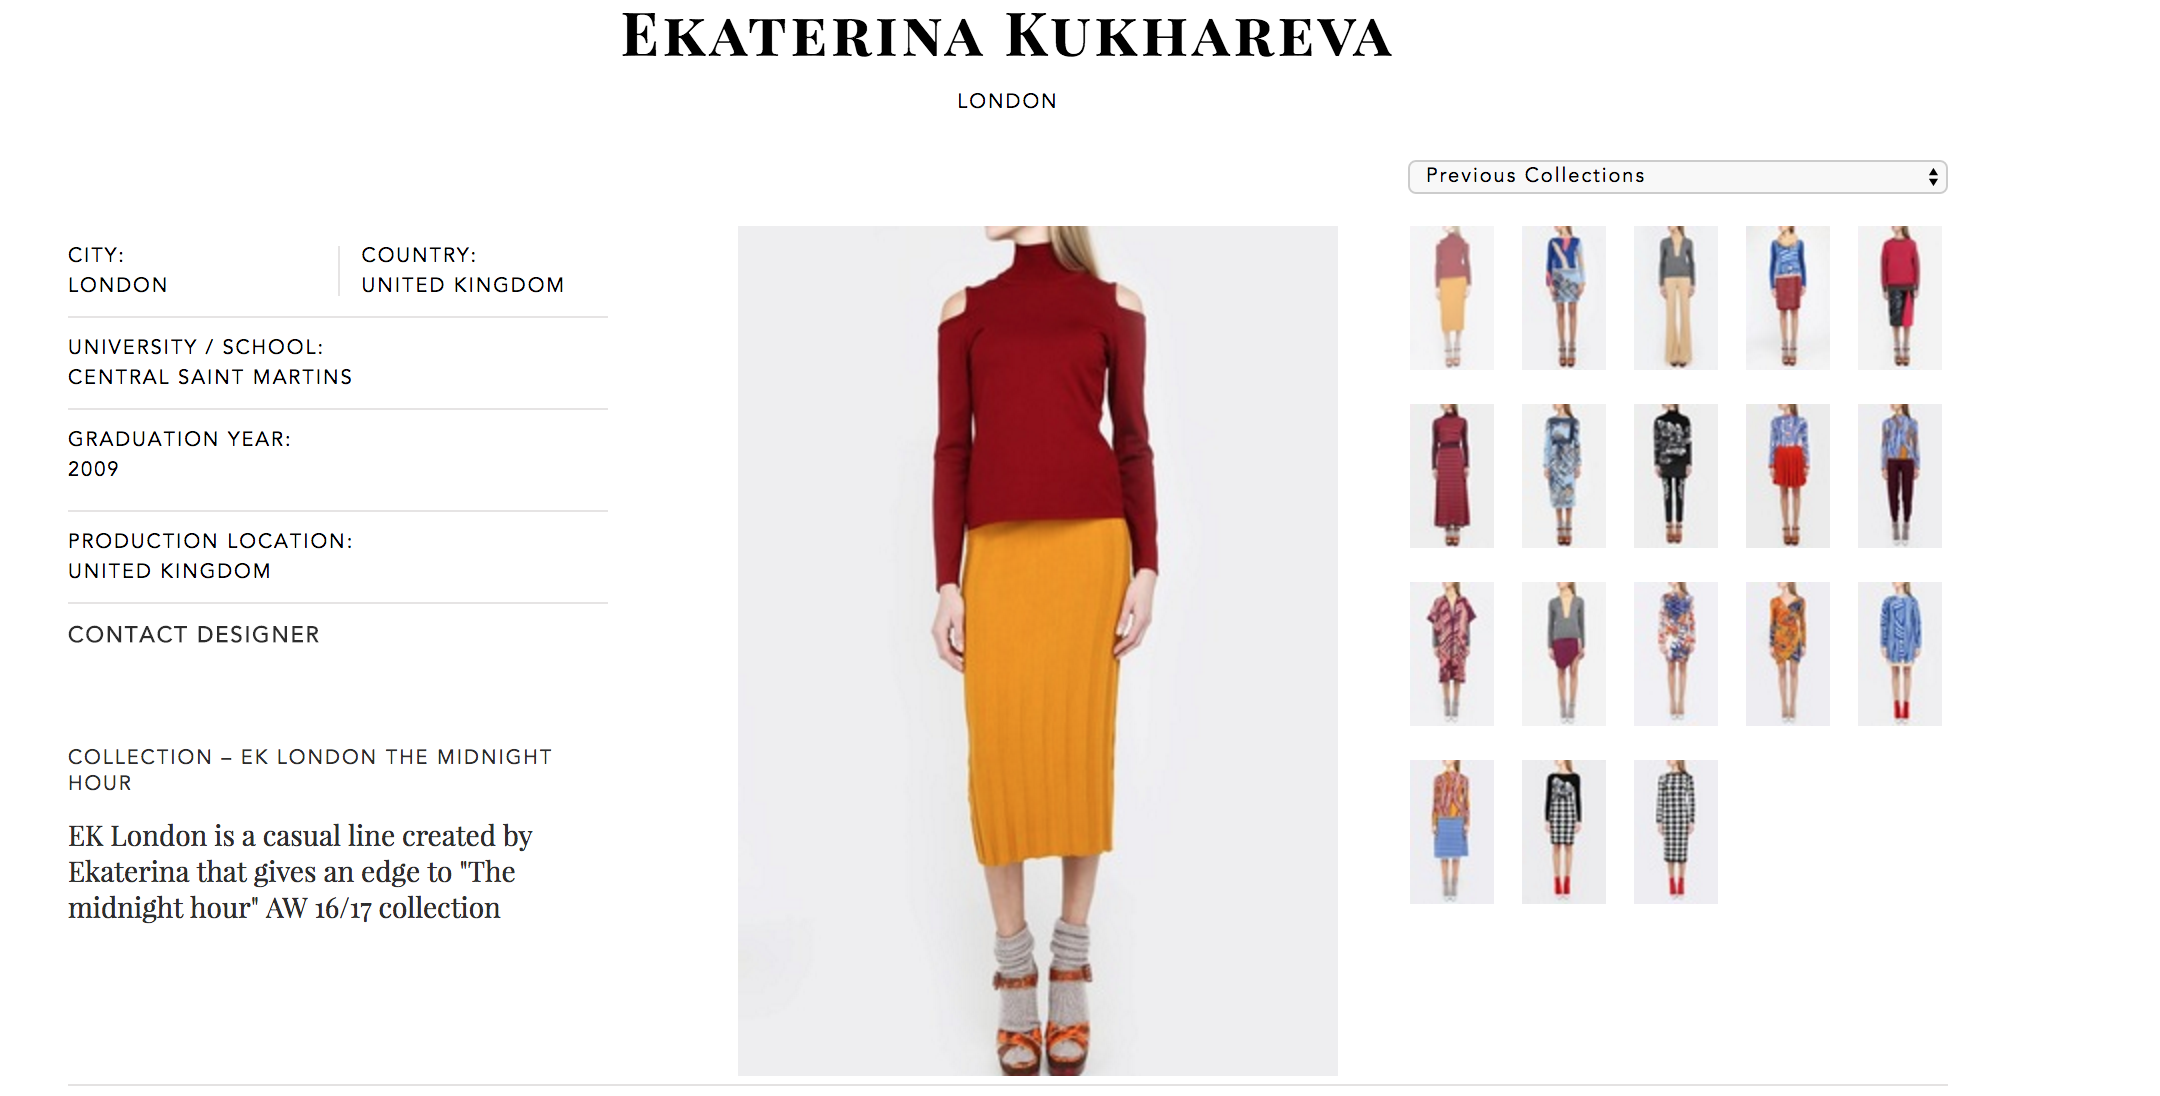 http://www.kukhareva.com/collections/11